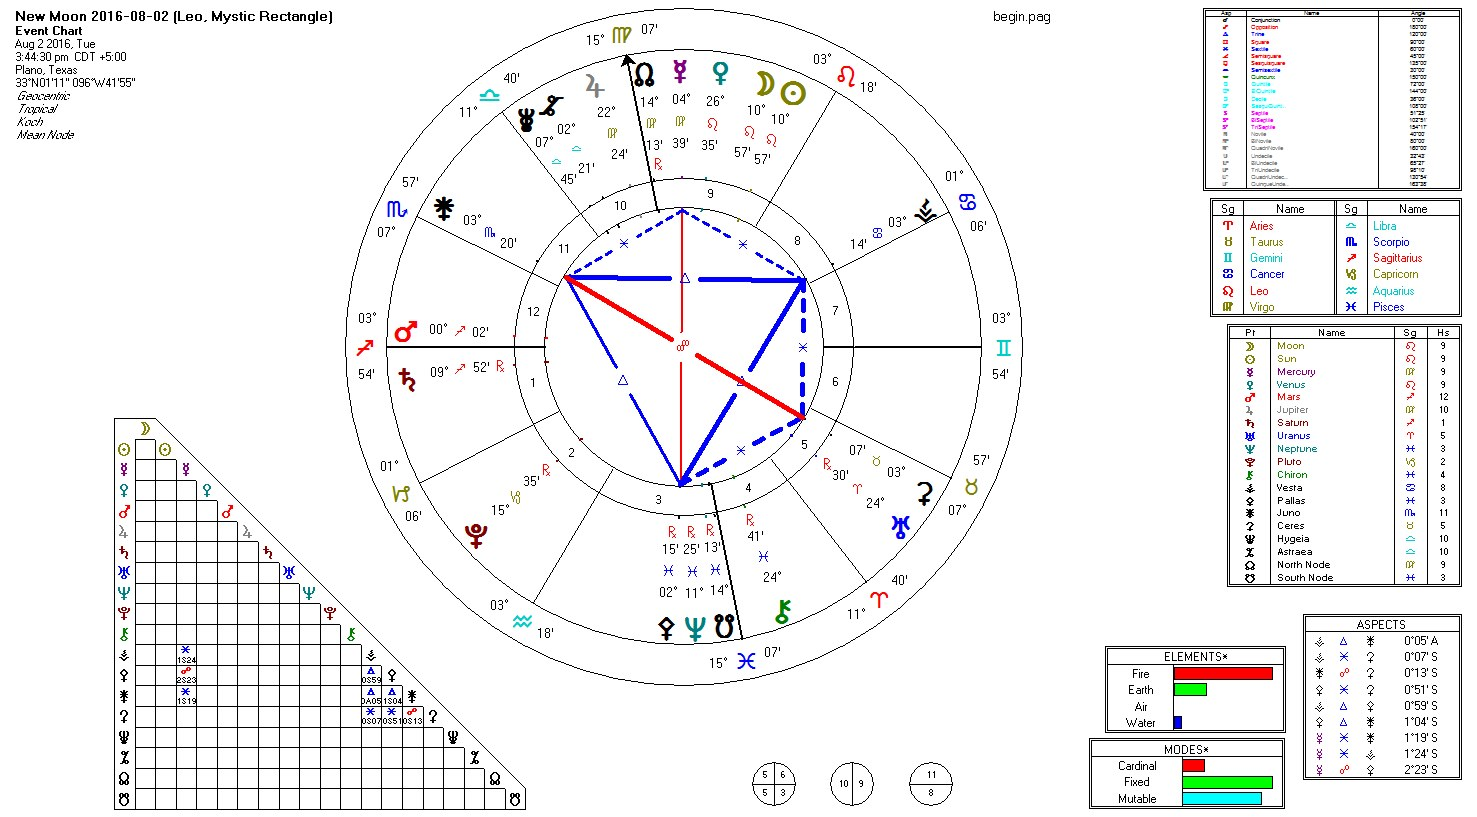 2016-08-02 New Moon (Leo, Kite Key)